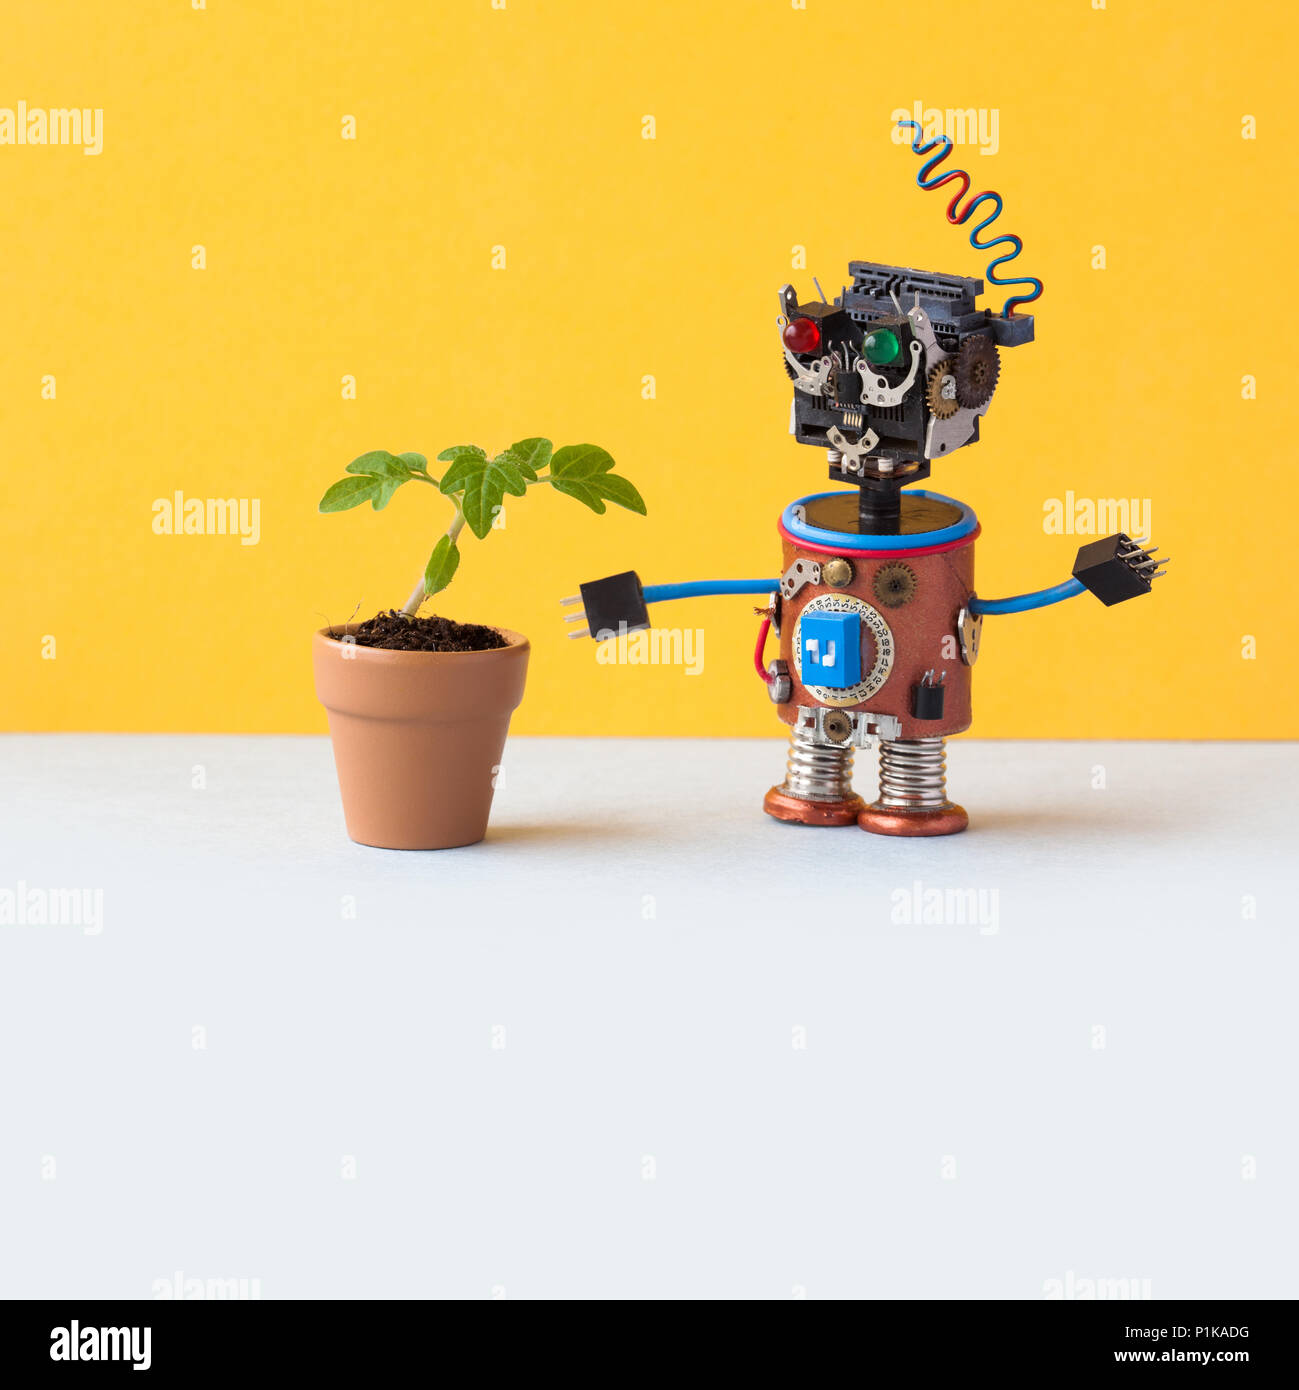 Robot explores a living green plant in a flower clay pot. Artificial intelligence versus organic life plant. Yellow wall background, white floor. Copy space. - Stock Image